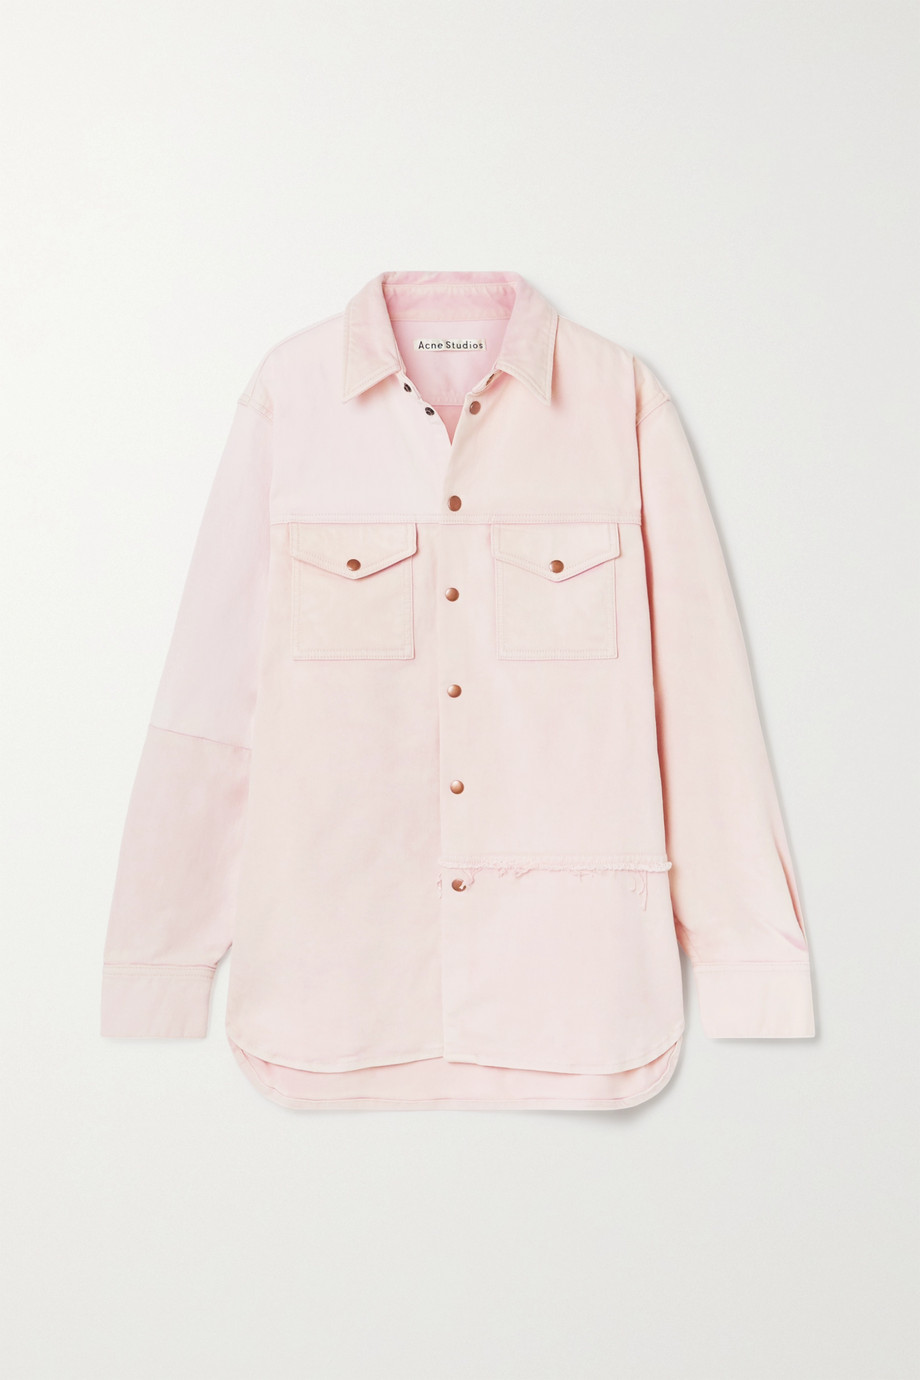 Acne Studios + NET SUSTAIN oversized organic denim jacket